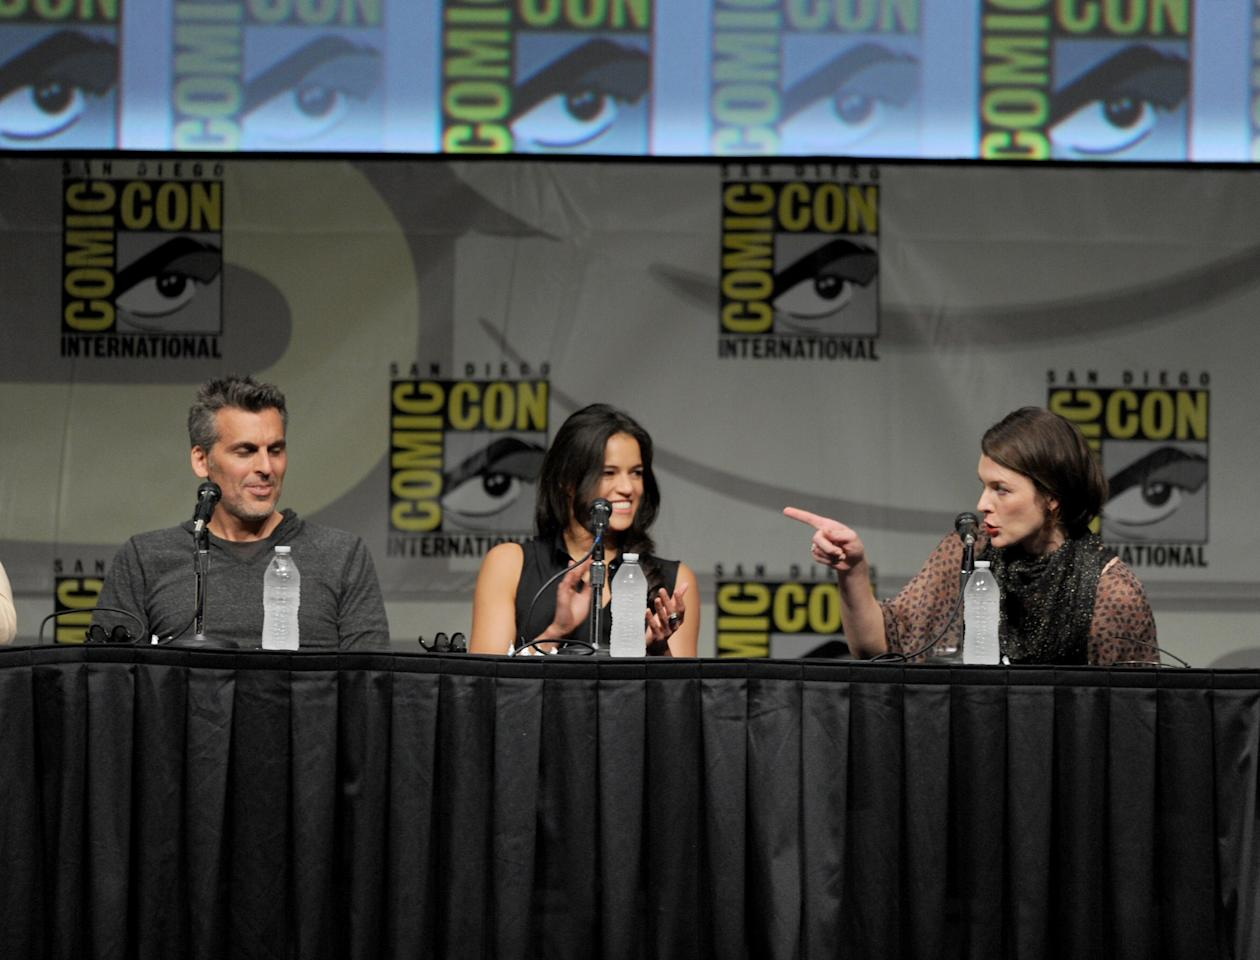 "SAN DIEGO, CA - JULY 13:  Actors Oded Fehr, Michelle Rodriguez, and Milla Jovovich speak at the Screen Gems' ""Resident Evil: Retribution"" panel during Comic-Con International 2012 at San Diego Convention Center on July 13, 2012 in San Diego, California.  (Photo by Kevin Winter/Getty Images)"